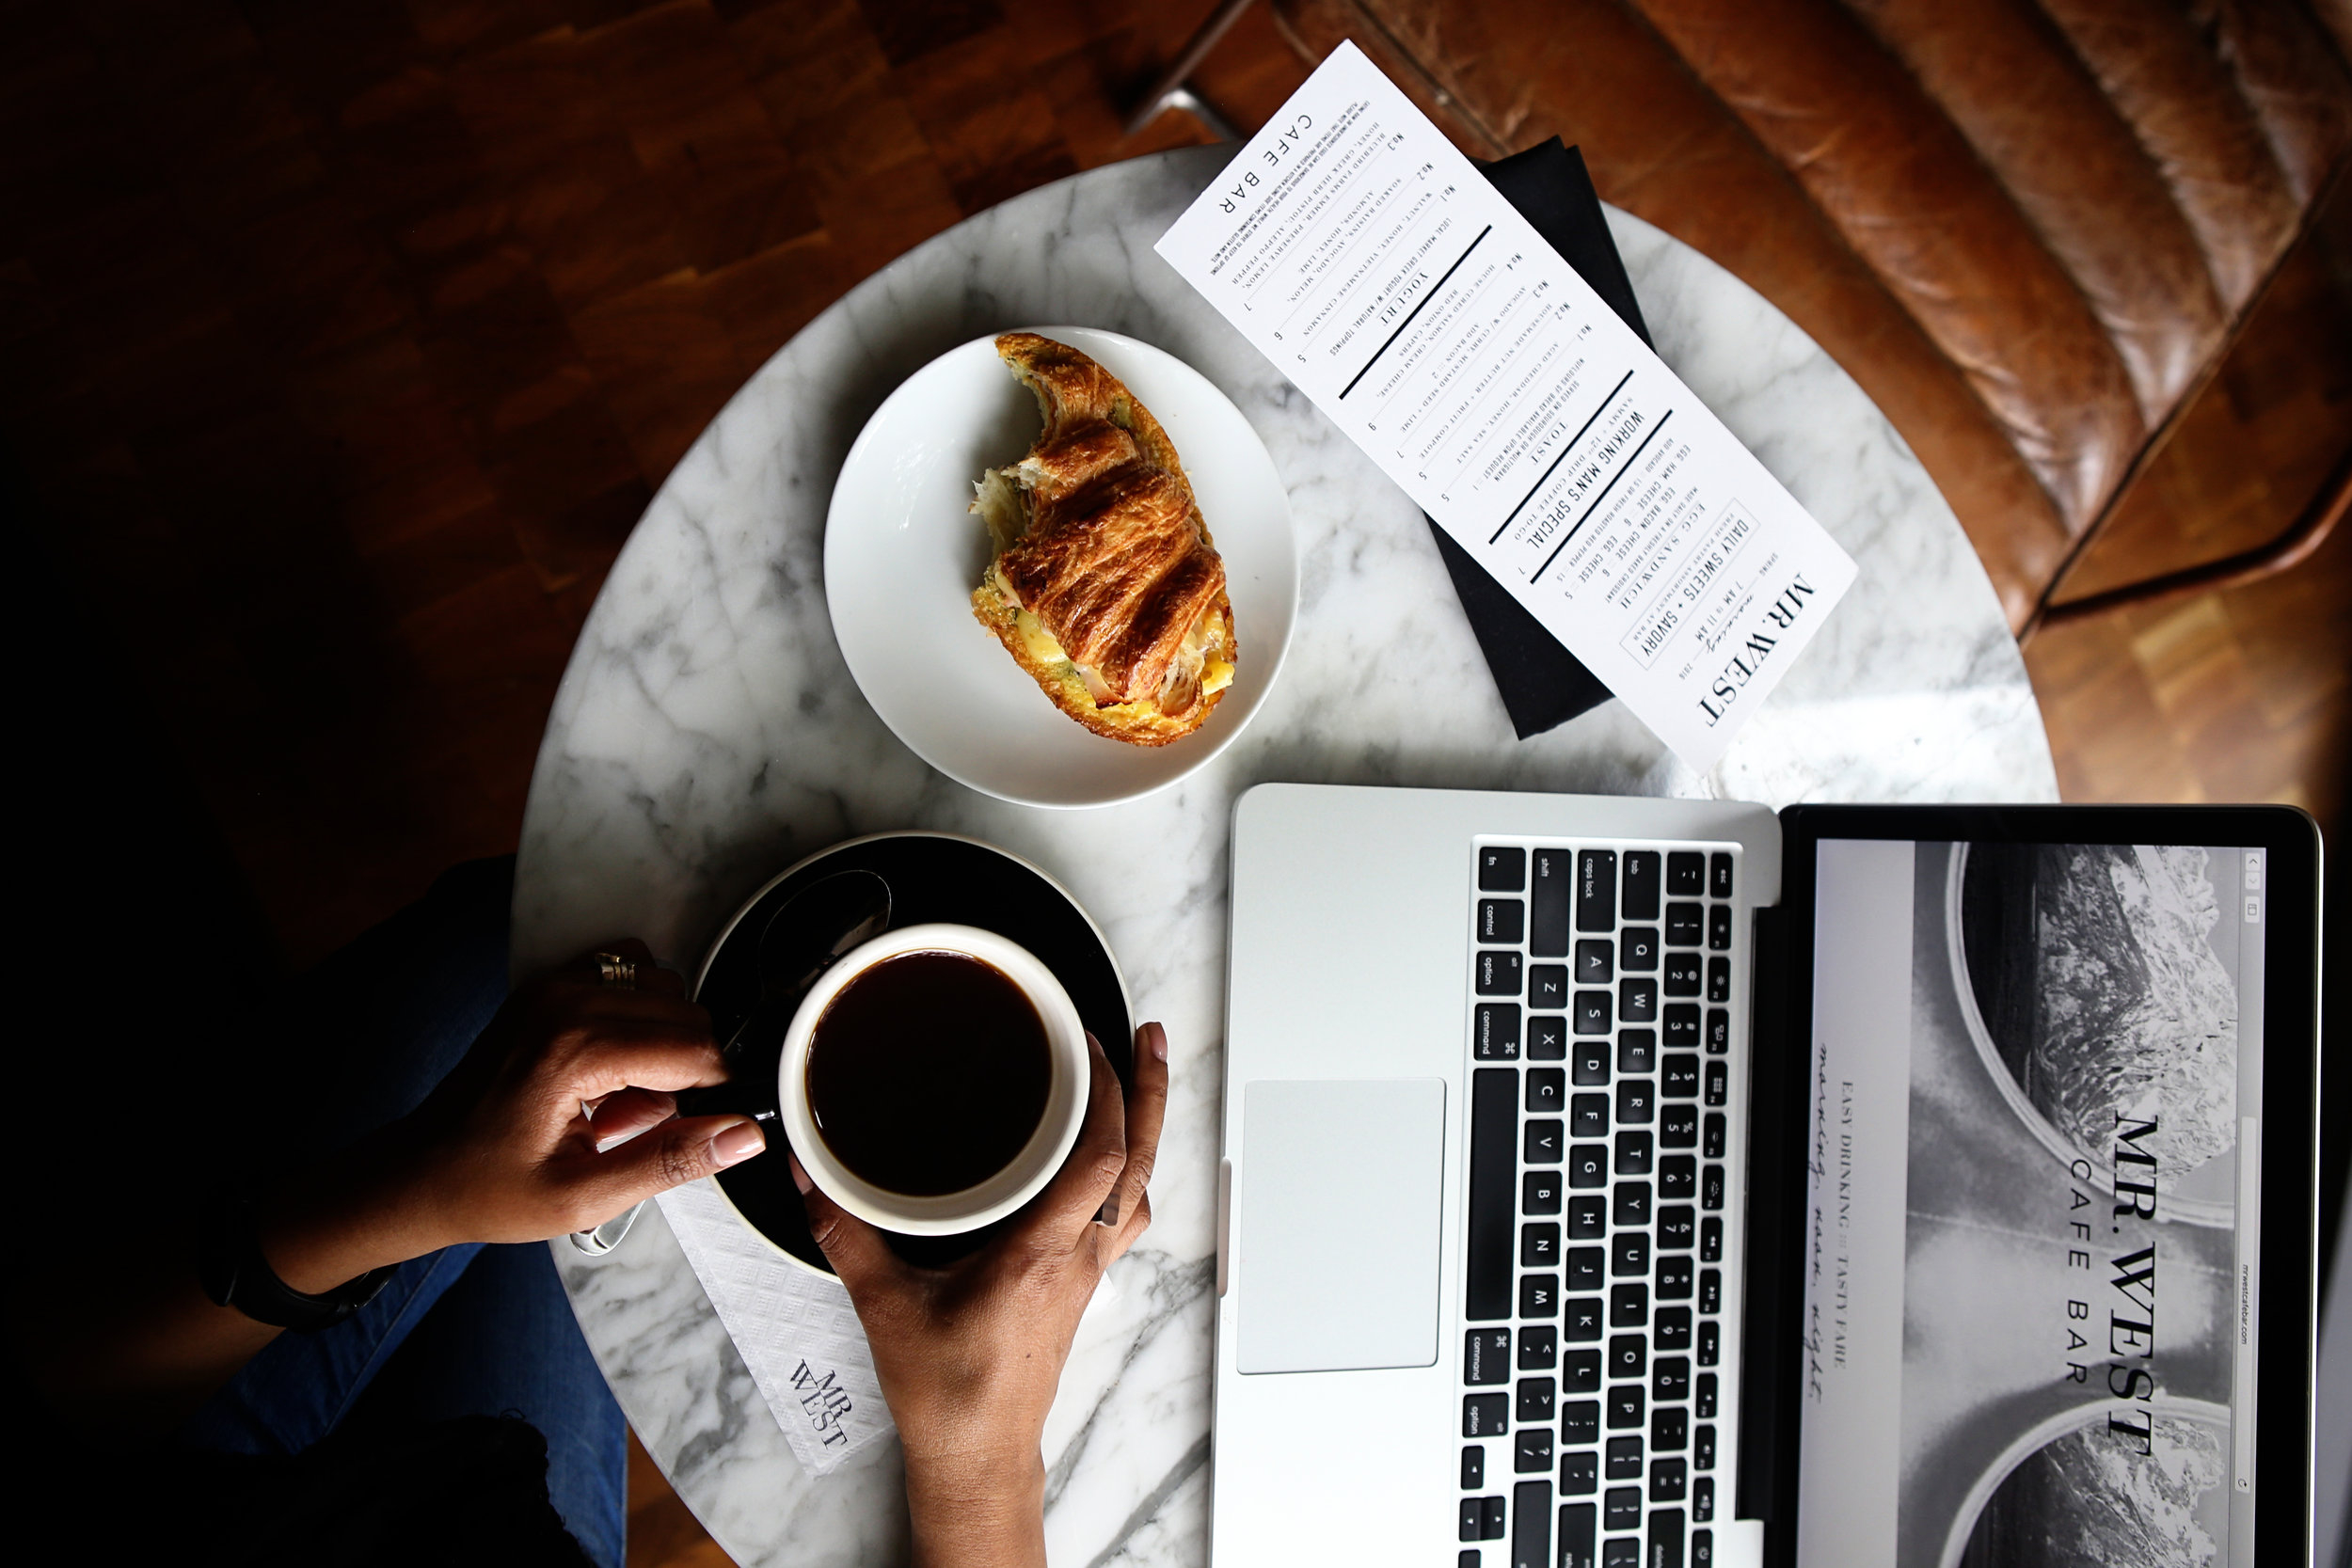 Canva - Macbook Pro and a Cup of Coffee on Table.jpg